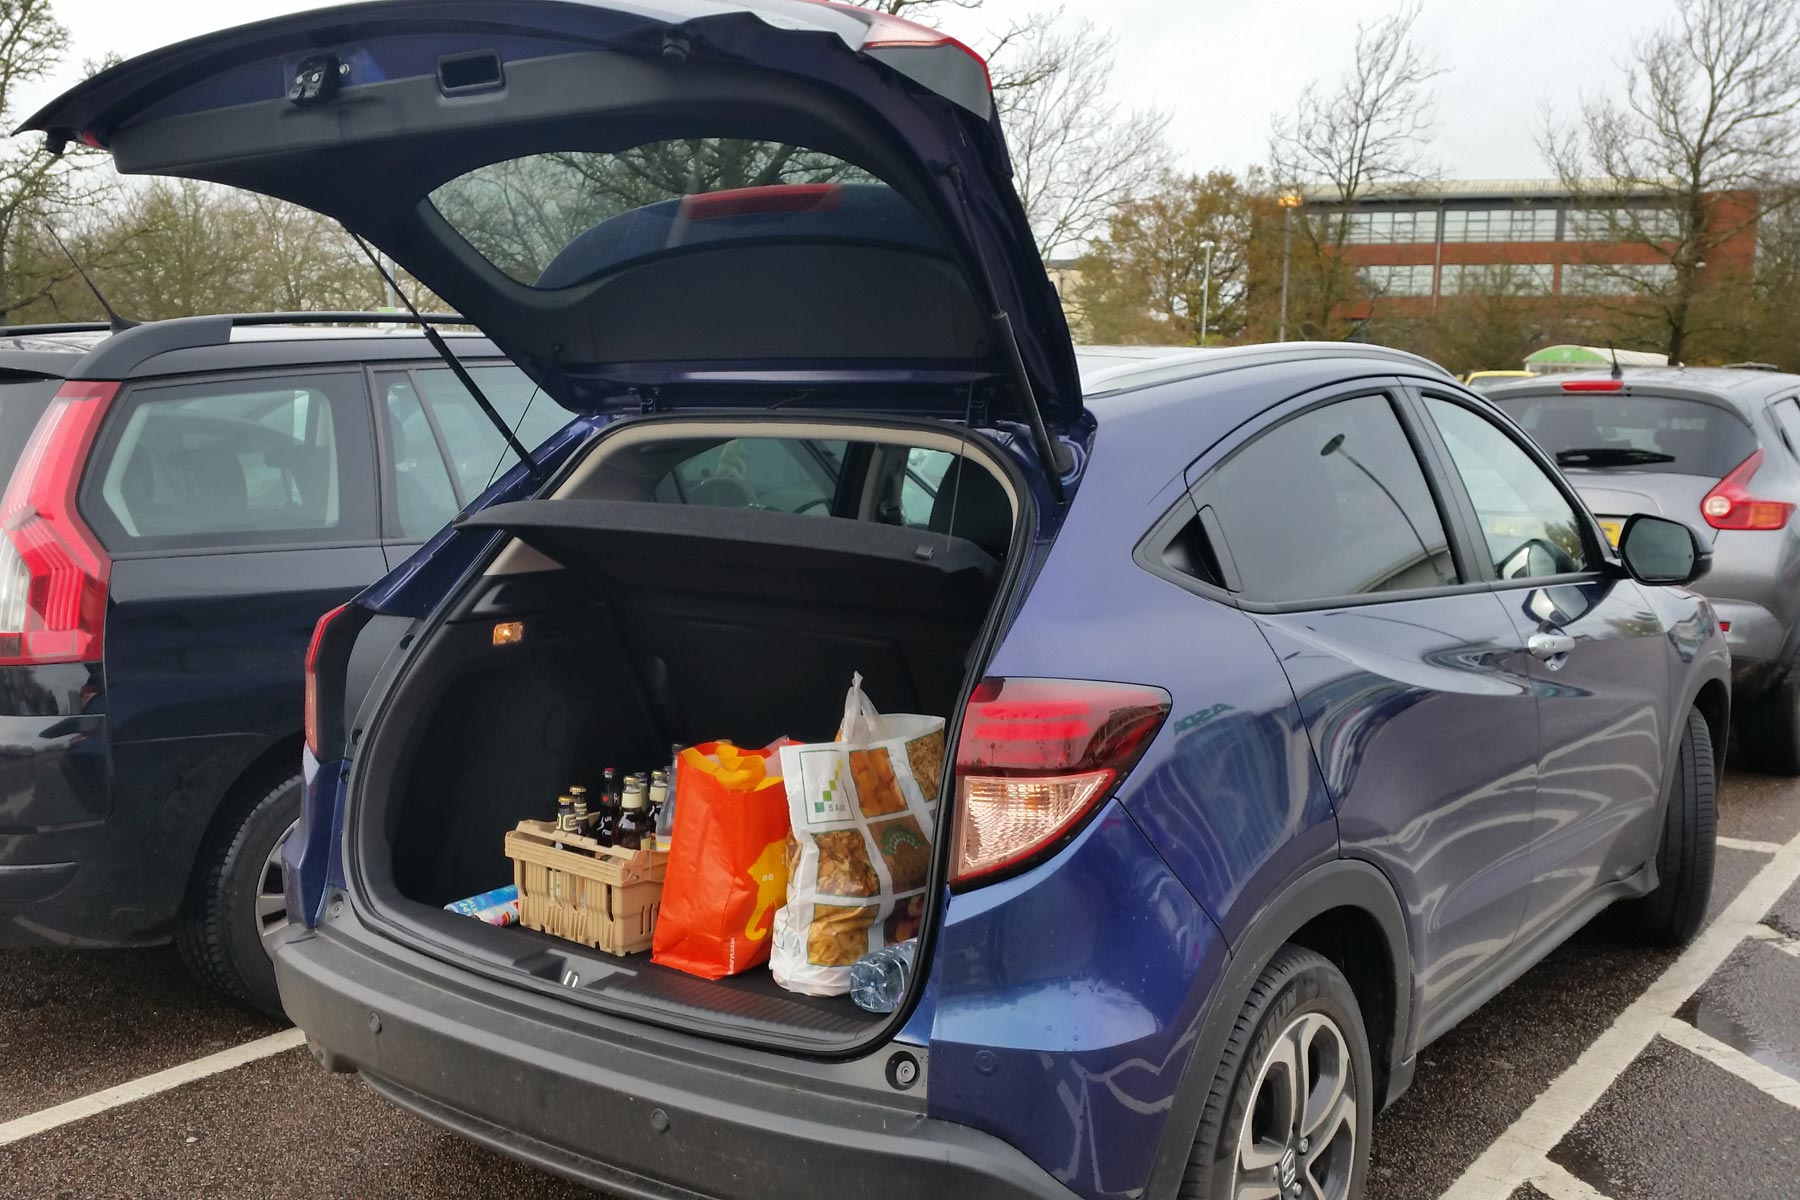 2015 Honda HR-V 1.6 i-DTEC EX: how easy is it to live with?